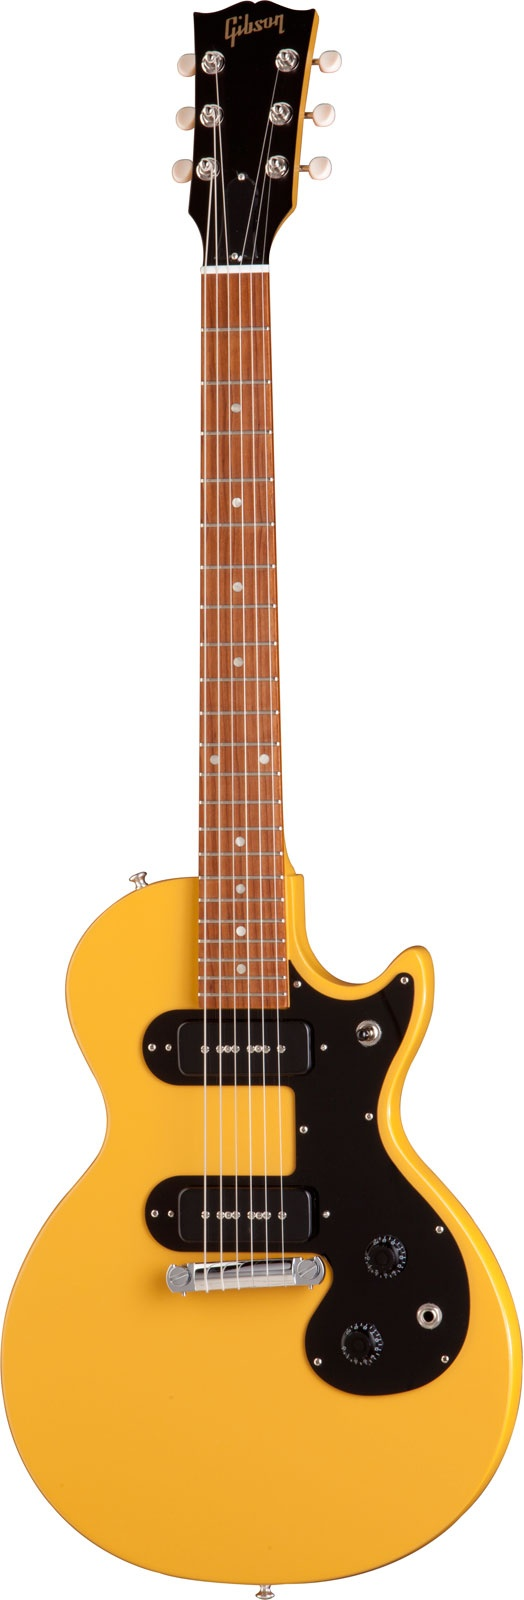 Color Mostaza - Mustard Yellow!!!  Gibson Melody Maker Special